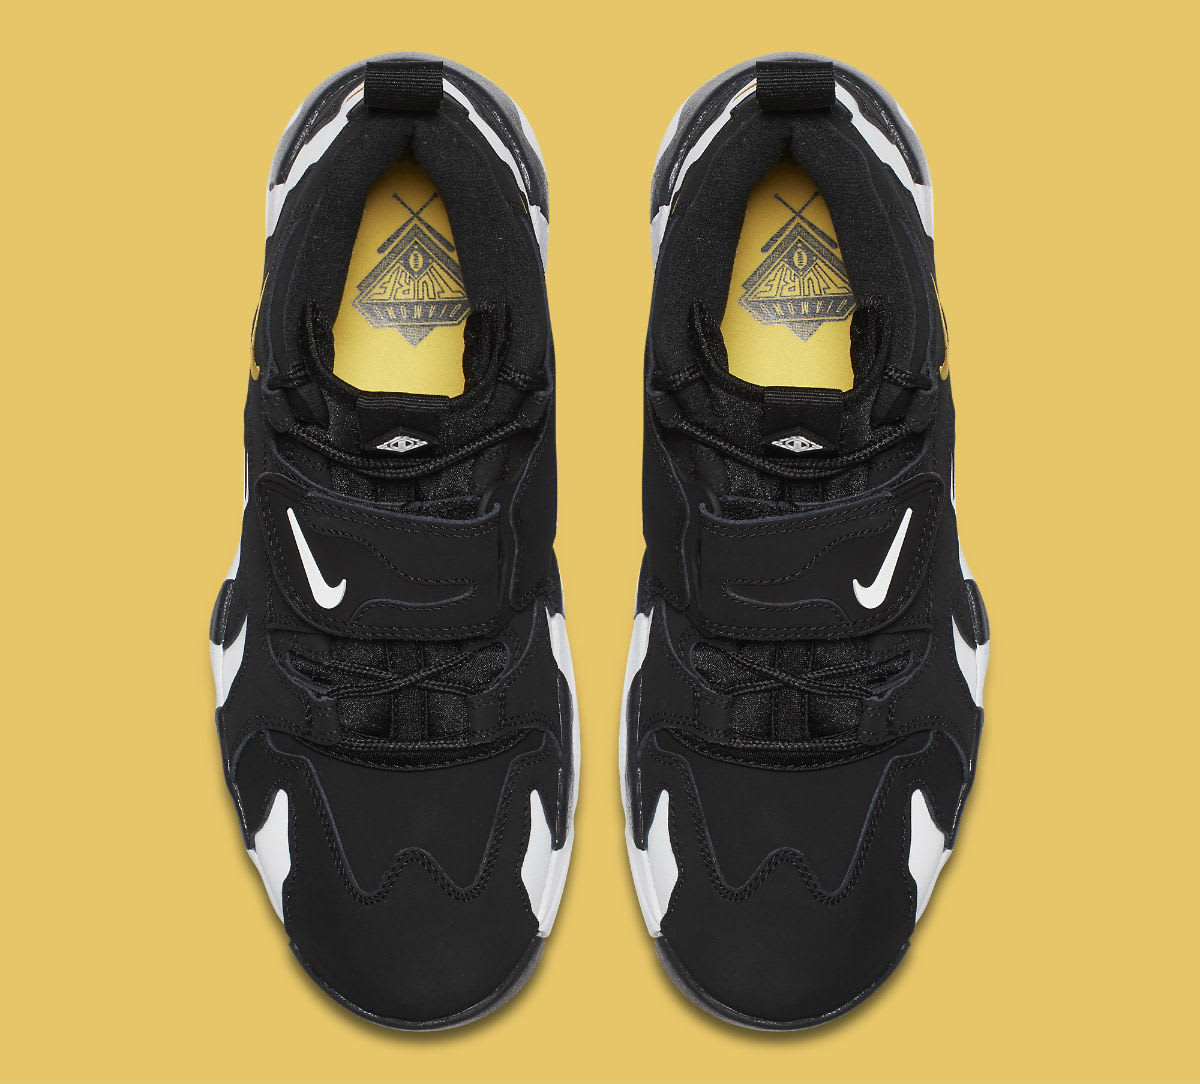 Nike Air DT Max 96 Black White Release Date 316408-003 Top